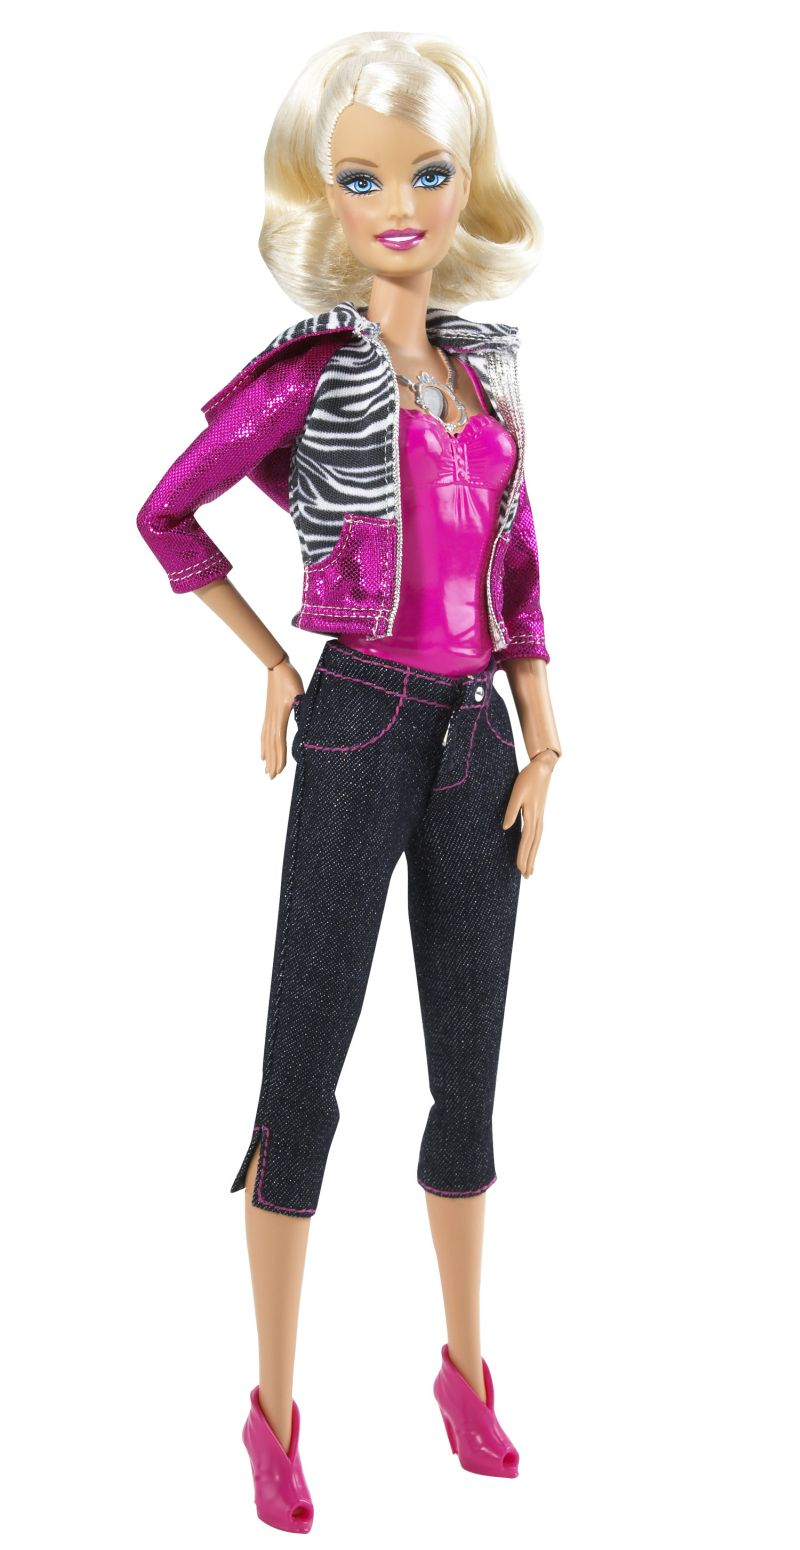 Girl Toy Figures : My dreams barbie dolls pictures collections